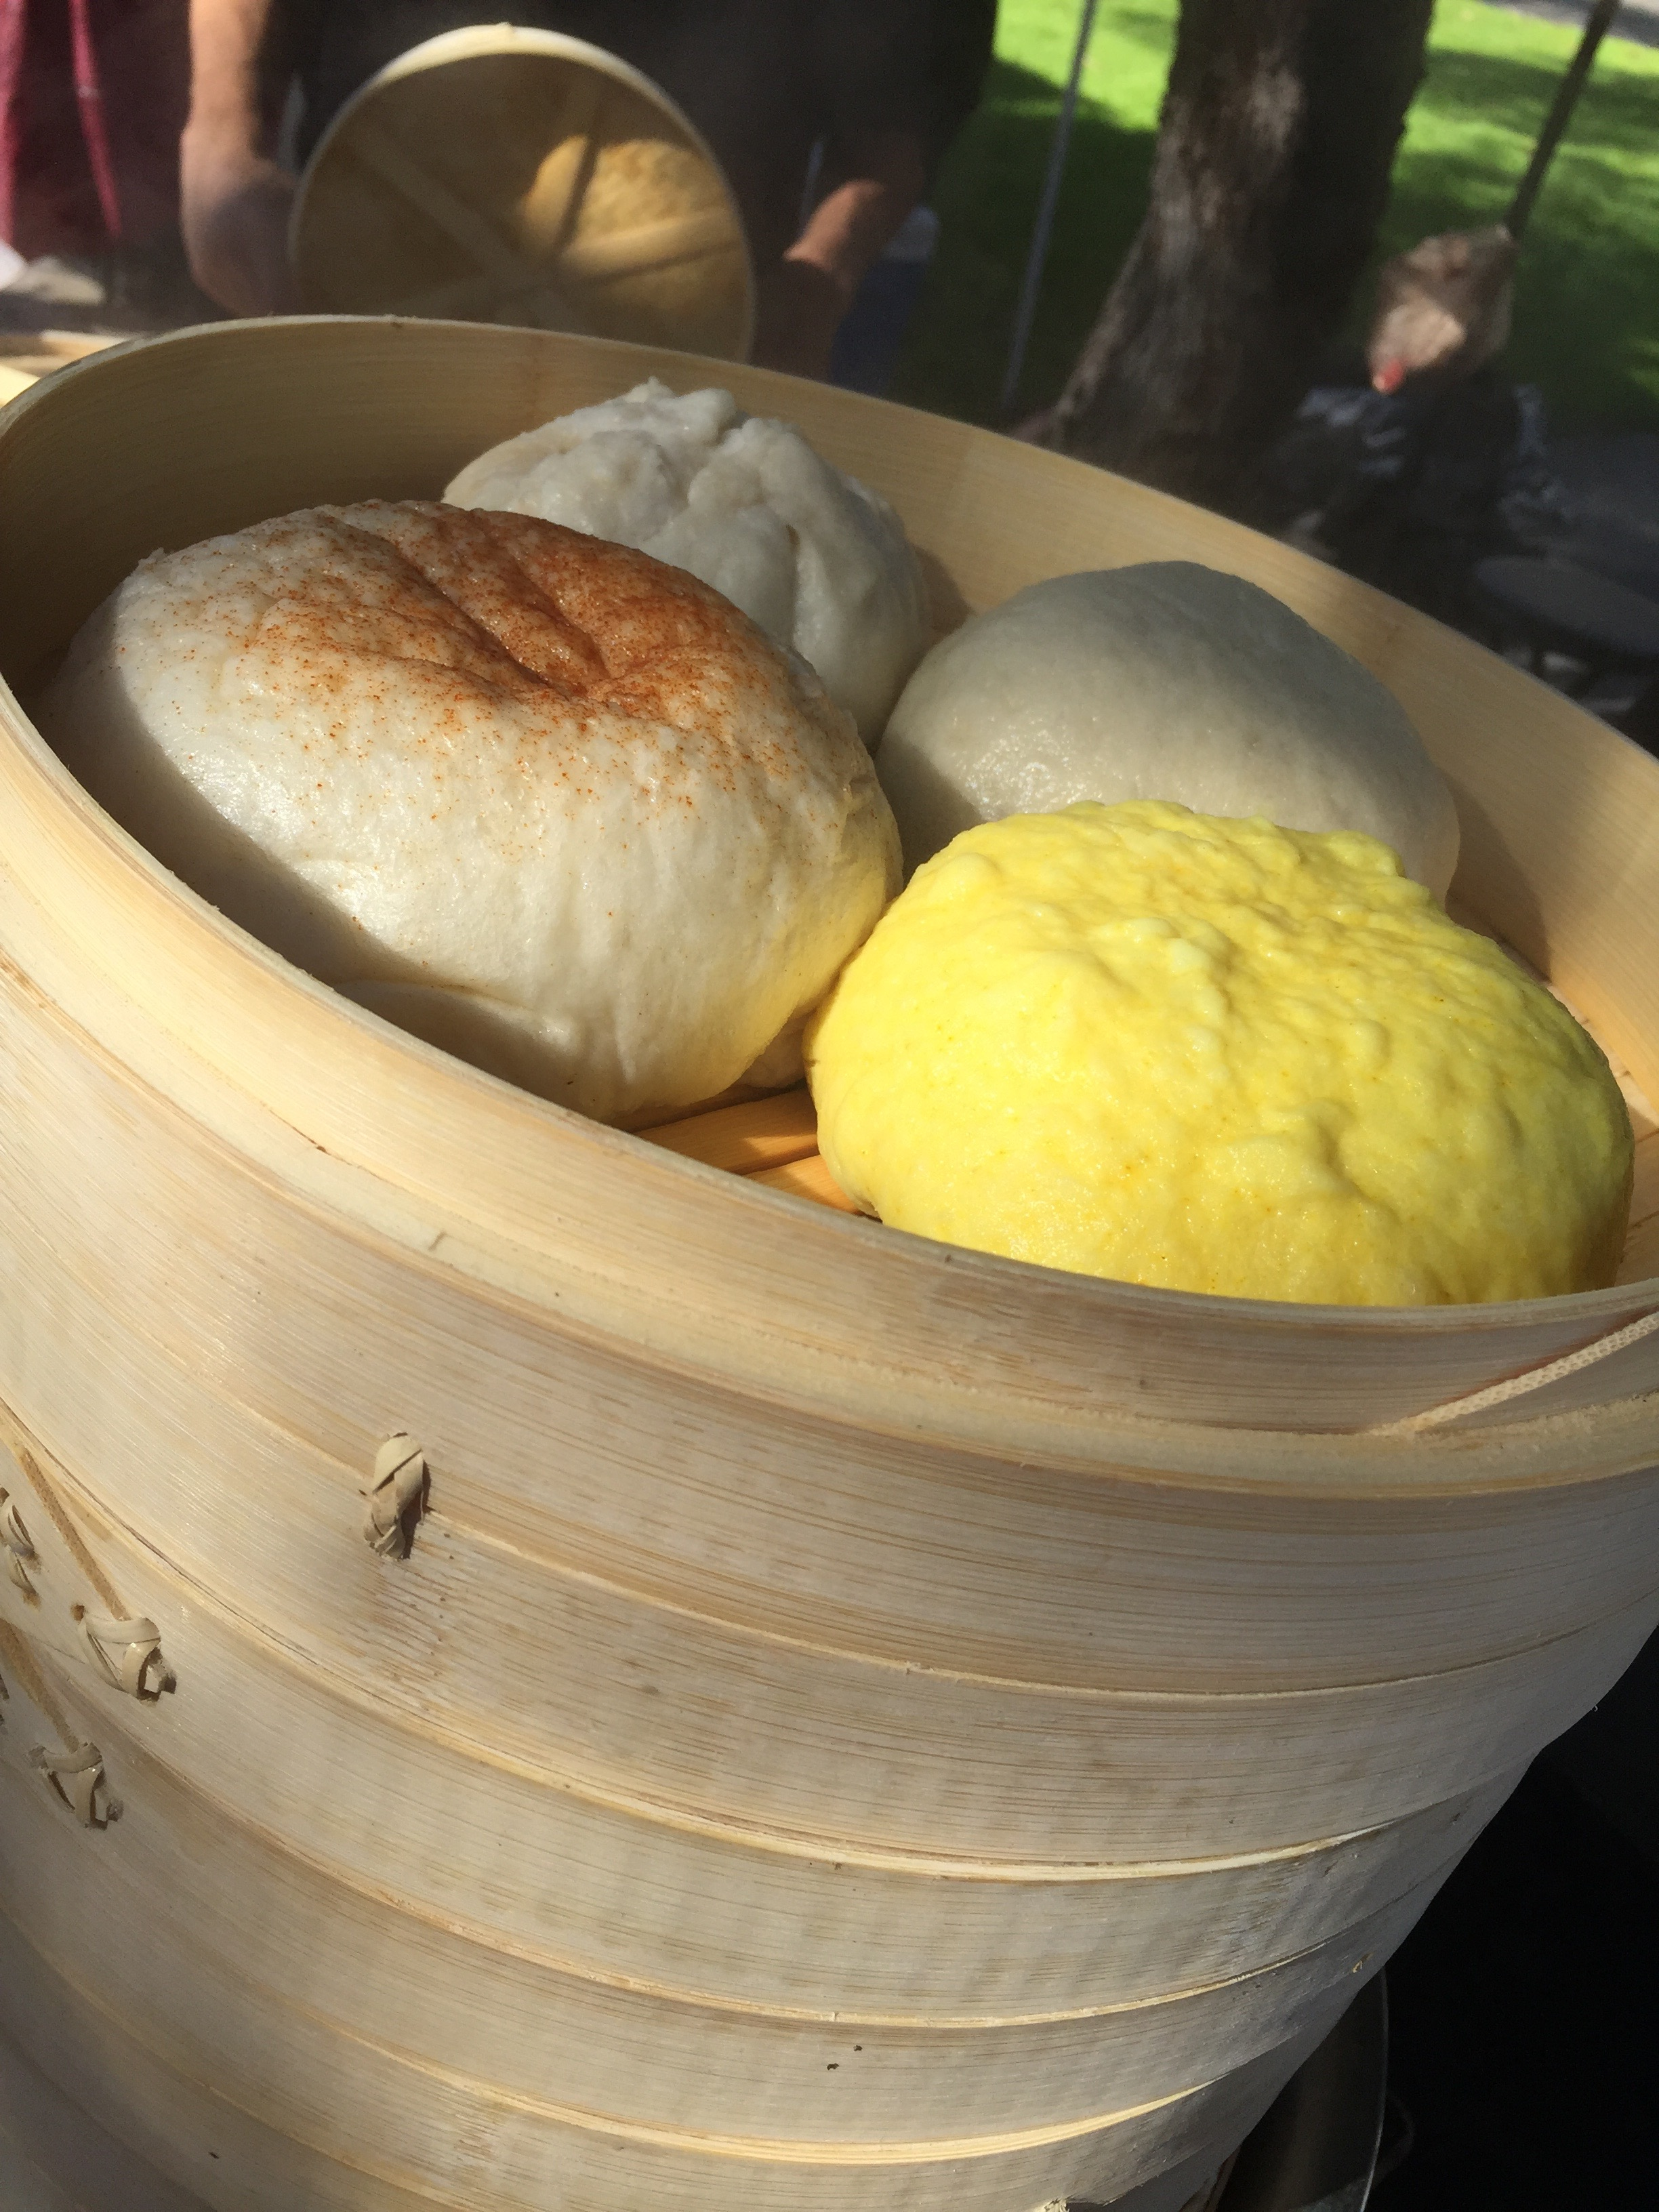 Steamed Bao in bamboo, soft, steamed bread with fillings